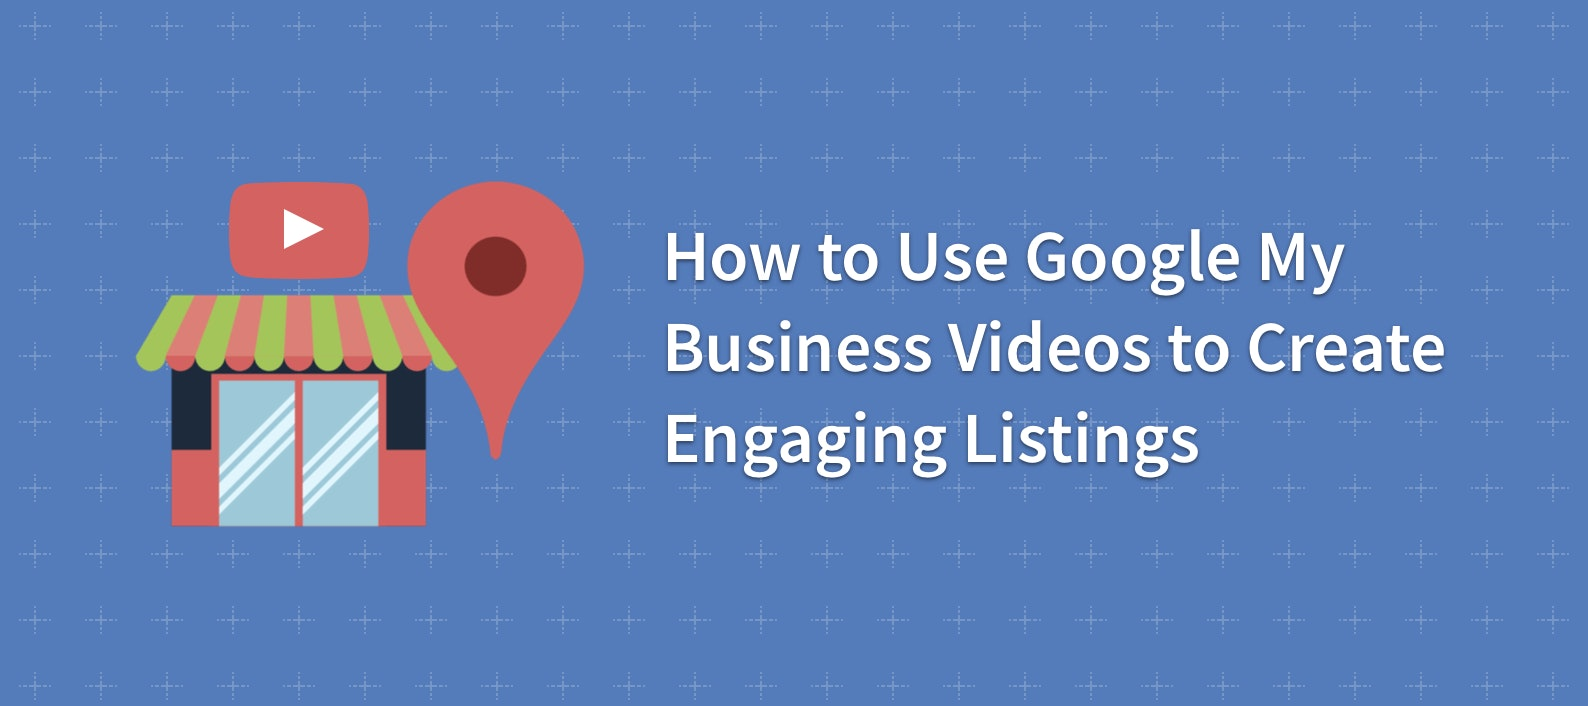 How to Use Google My Business Videos to Create Engaging Listings